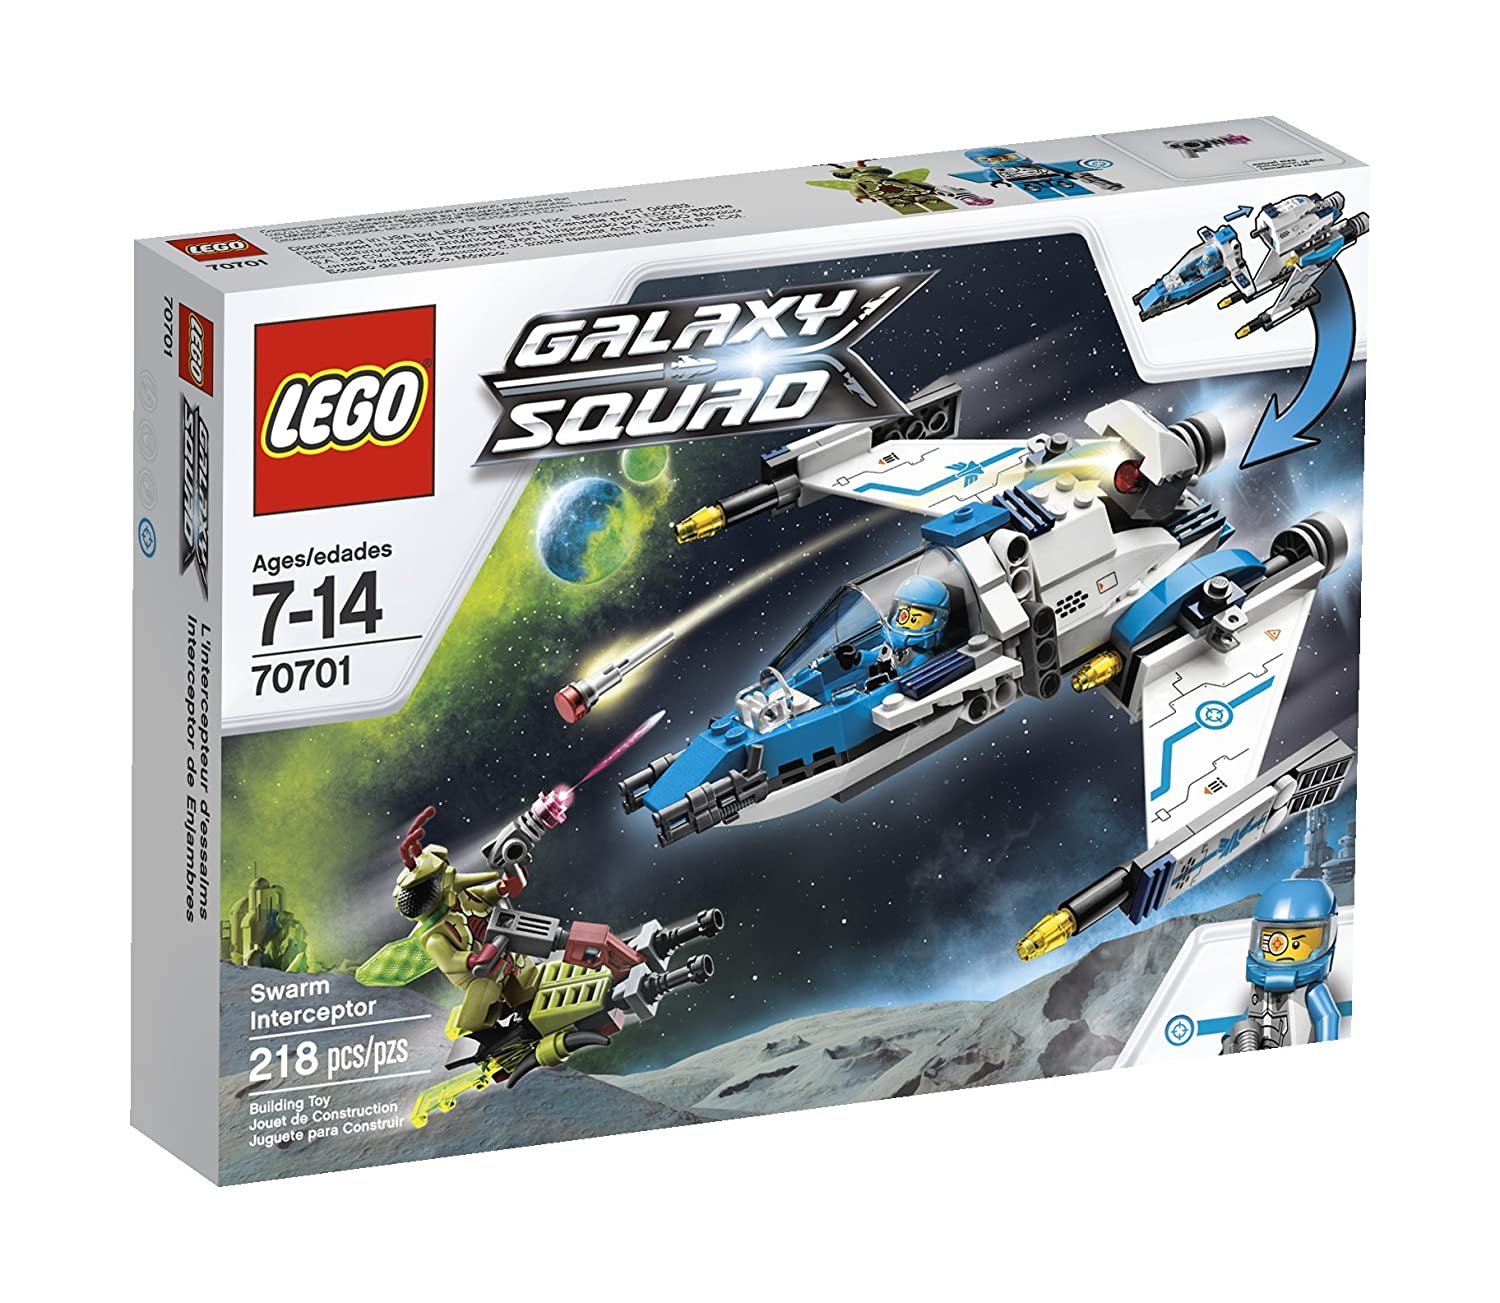 amazon com lego galaxy squad swarm interceptor 70701 toys games rh amazon com